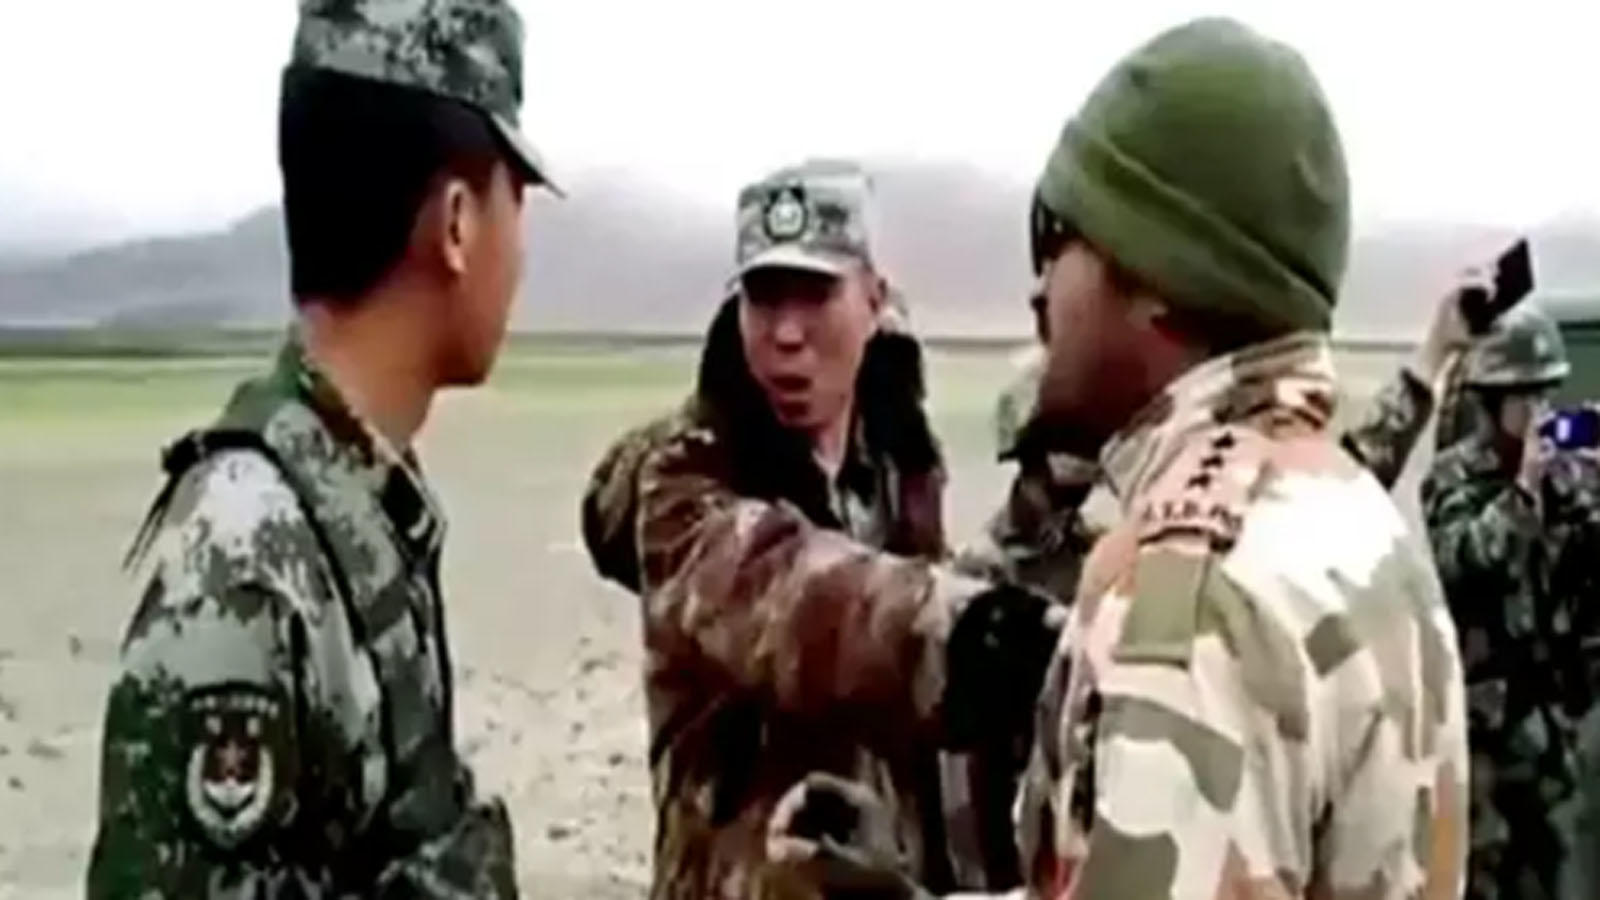 lac-row-troops-of-india-china-close-to-each-other-at-some-places-say-sources